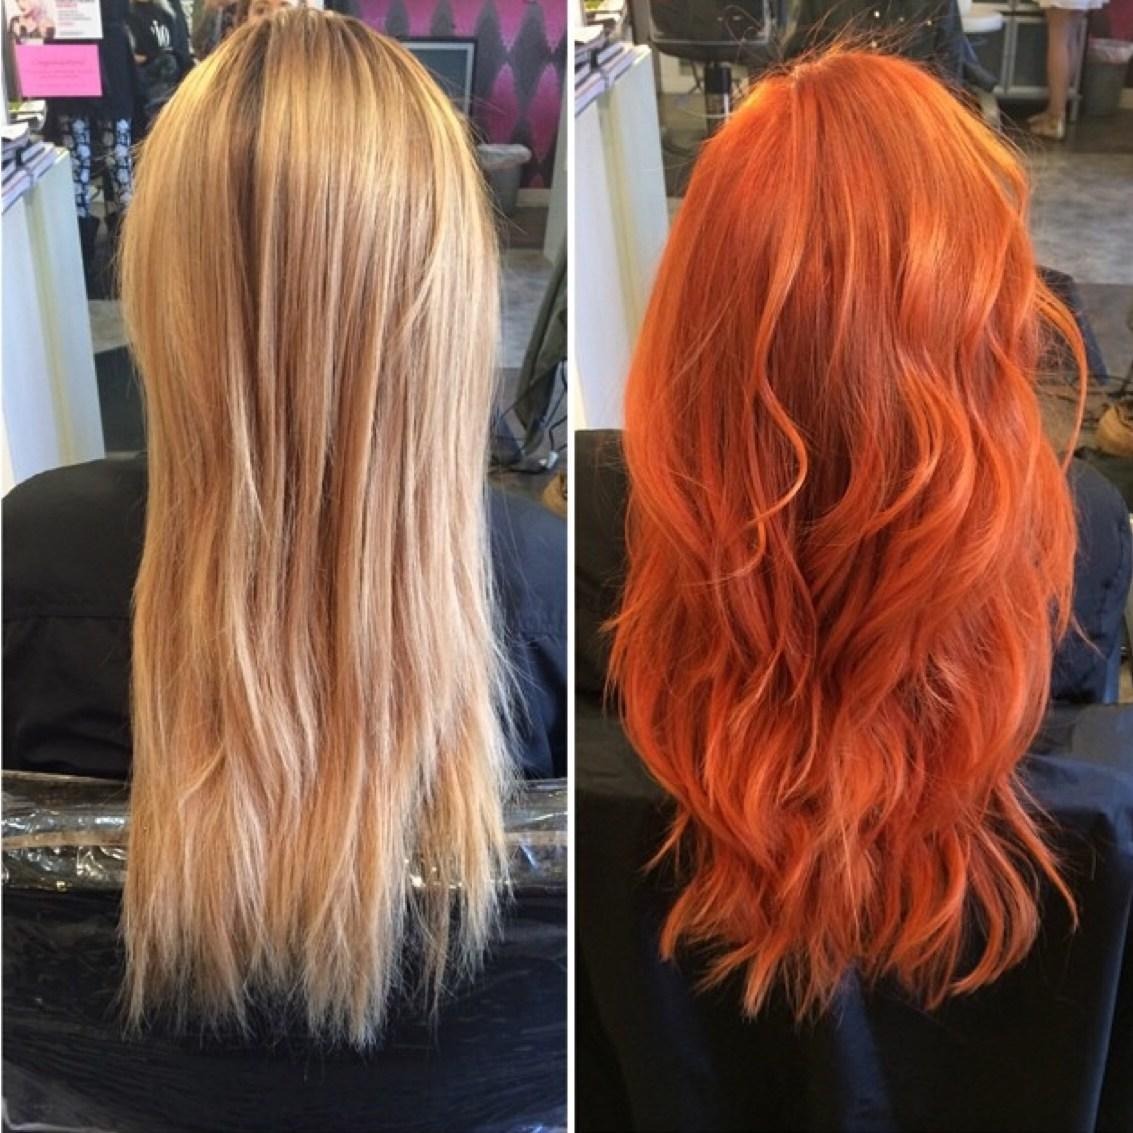 The Best Transformation Fiery Golden Copper Career Modern Salon Pictures